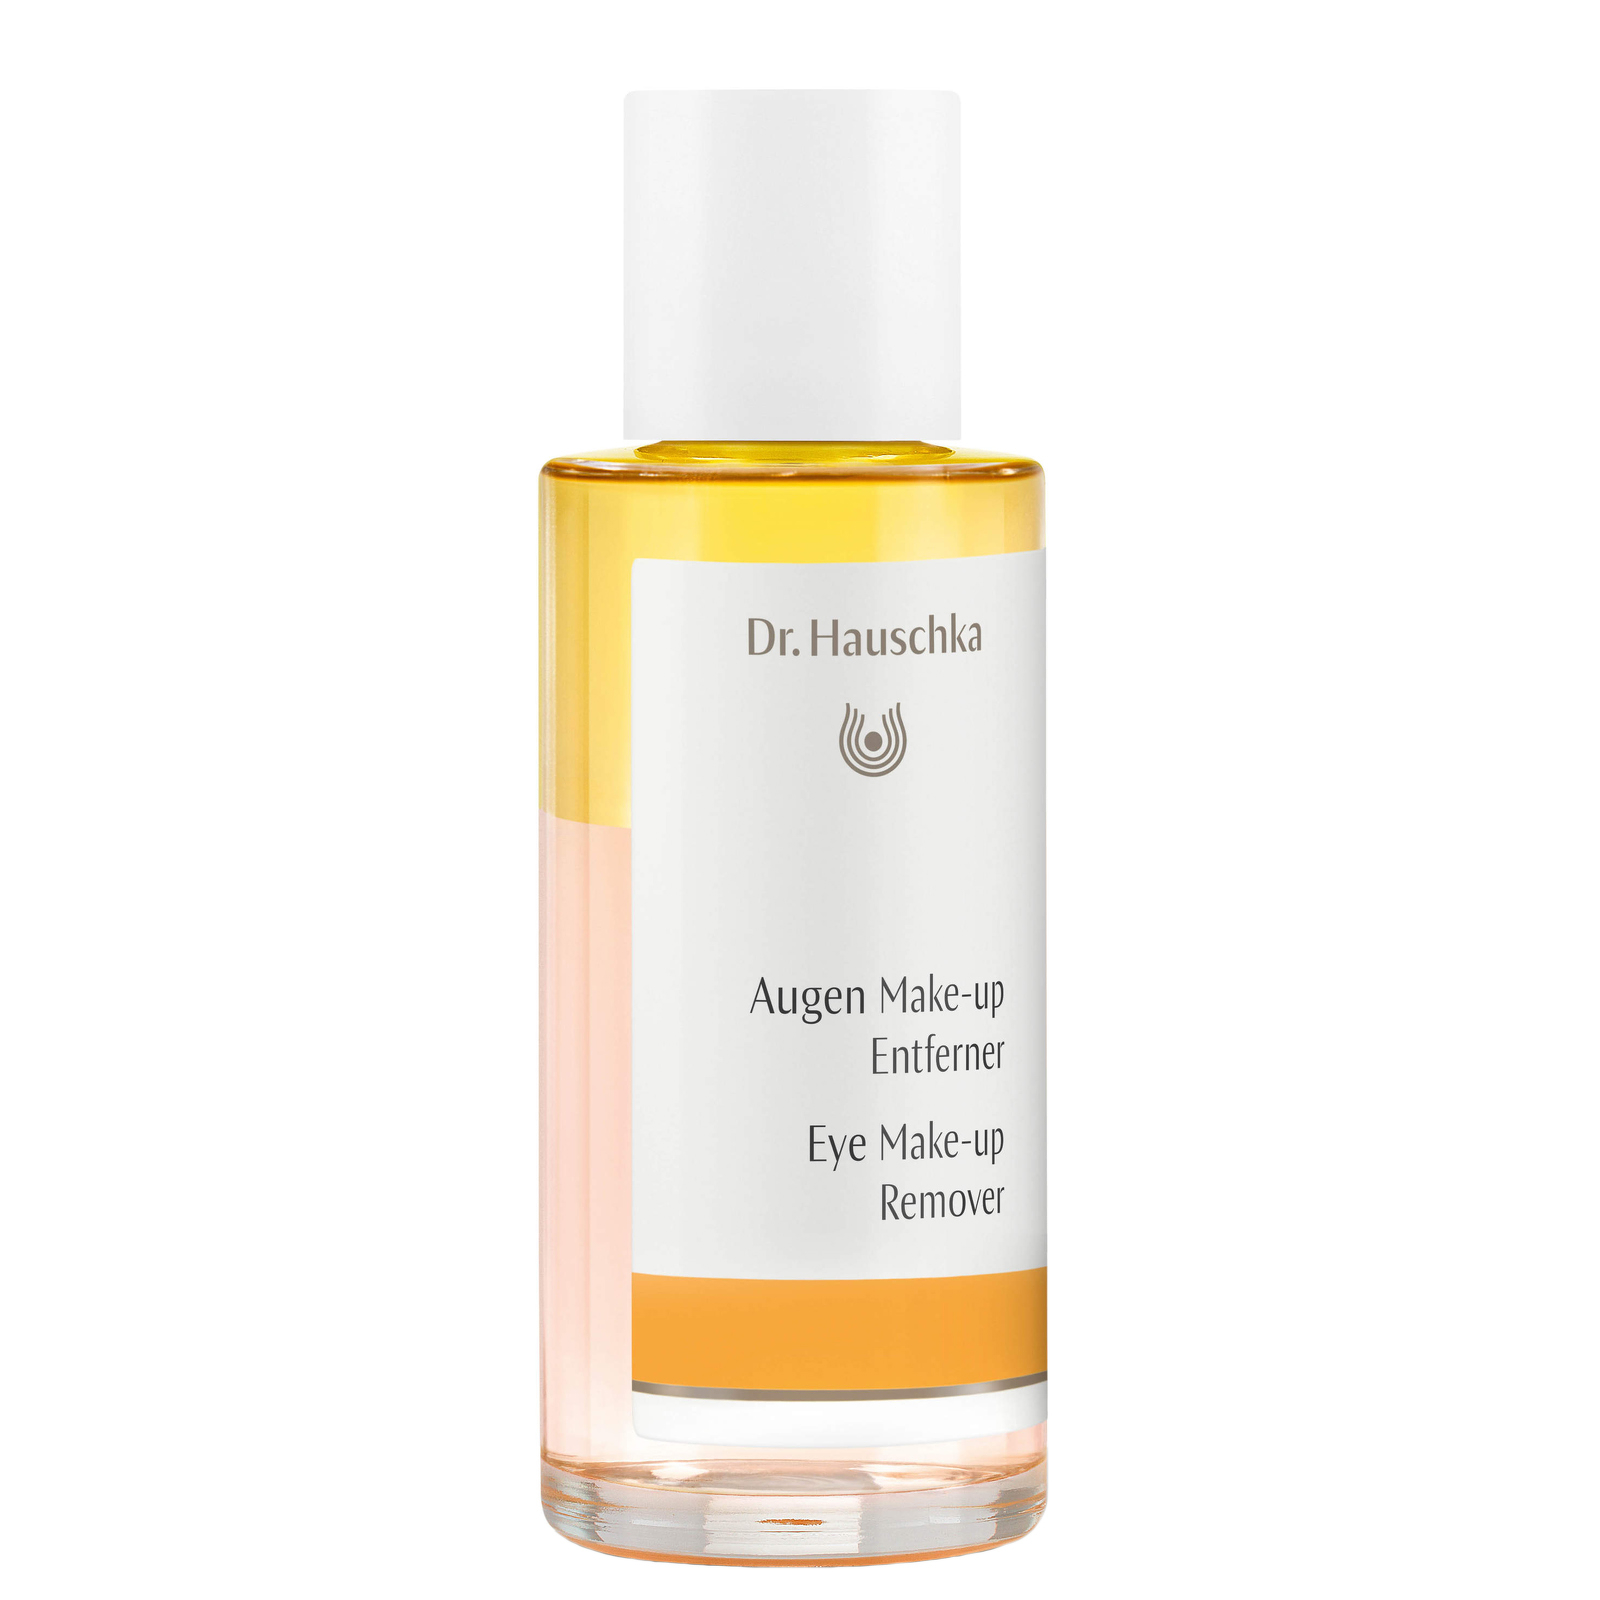 Dr. Hauschka Face Care Eye Make-Up Remover 75ml